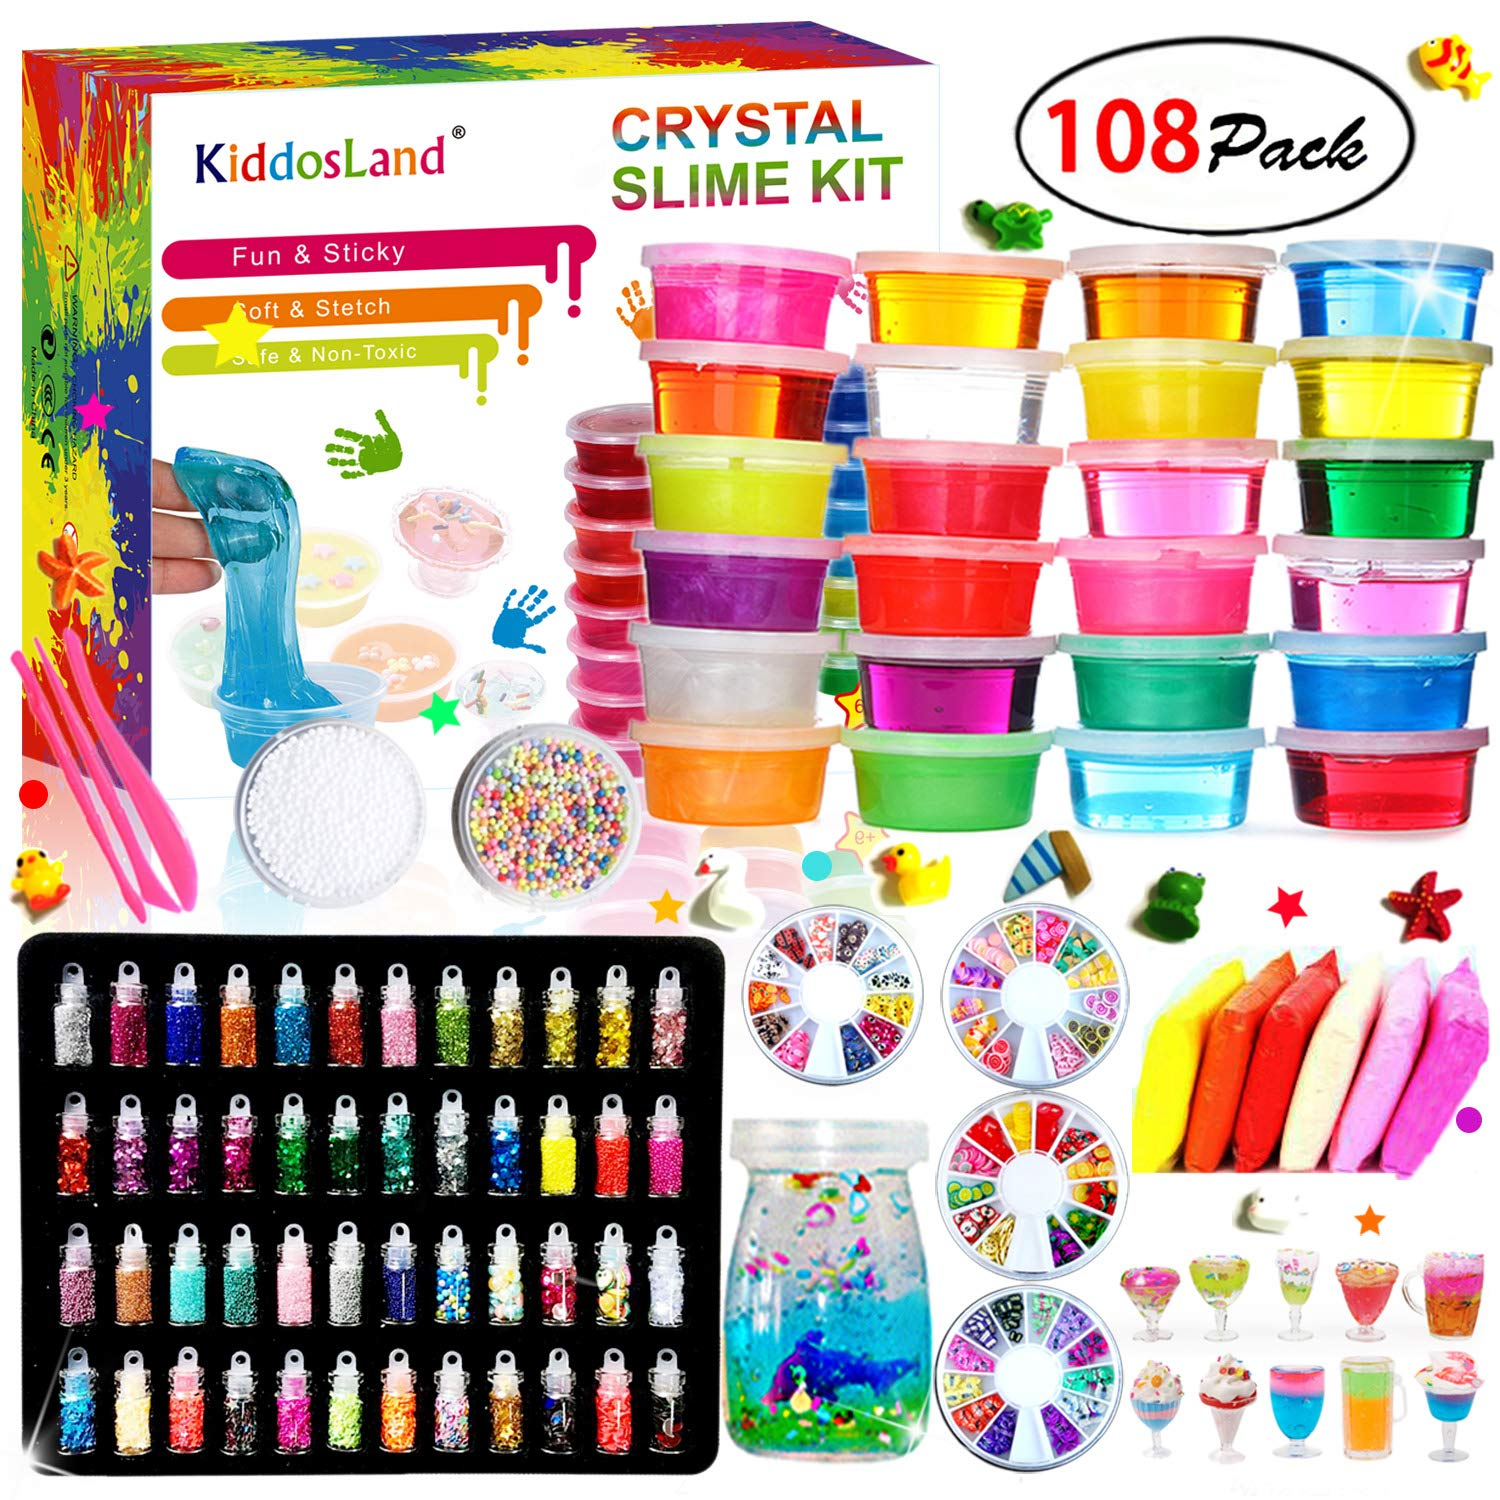 DIY Crystal Slime Kit - Slime kits for Girls Boys Toys with 48 Glitter Powder,Clear Slime Supplies for Kids Art Craft,Includes Air Dry Clay, Fruit Slice and Tools,Squeeze Stress Relief Toy (24 Colors) by Kiddosland